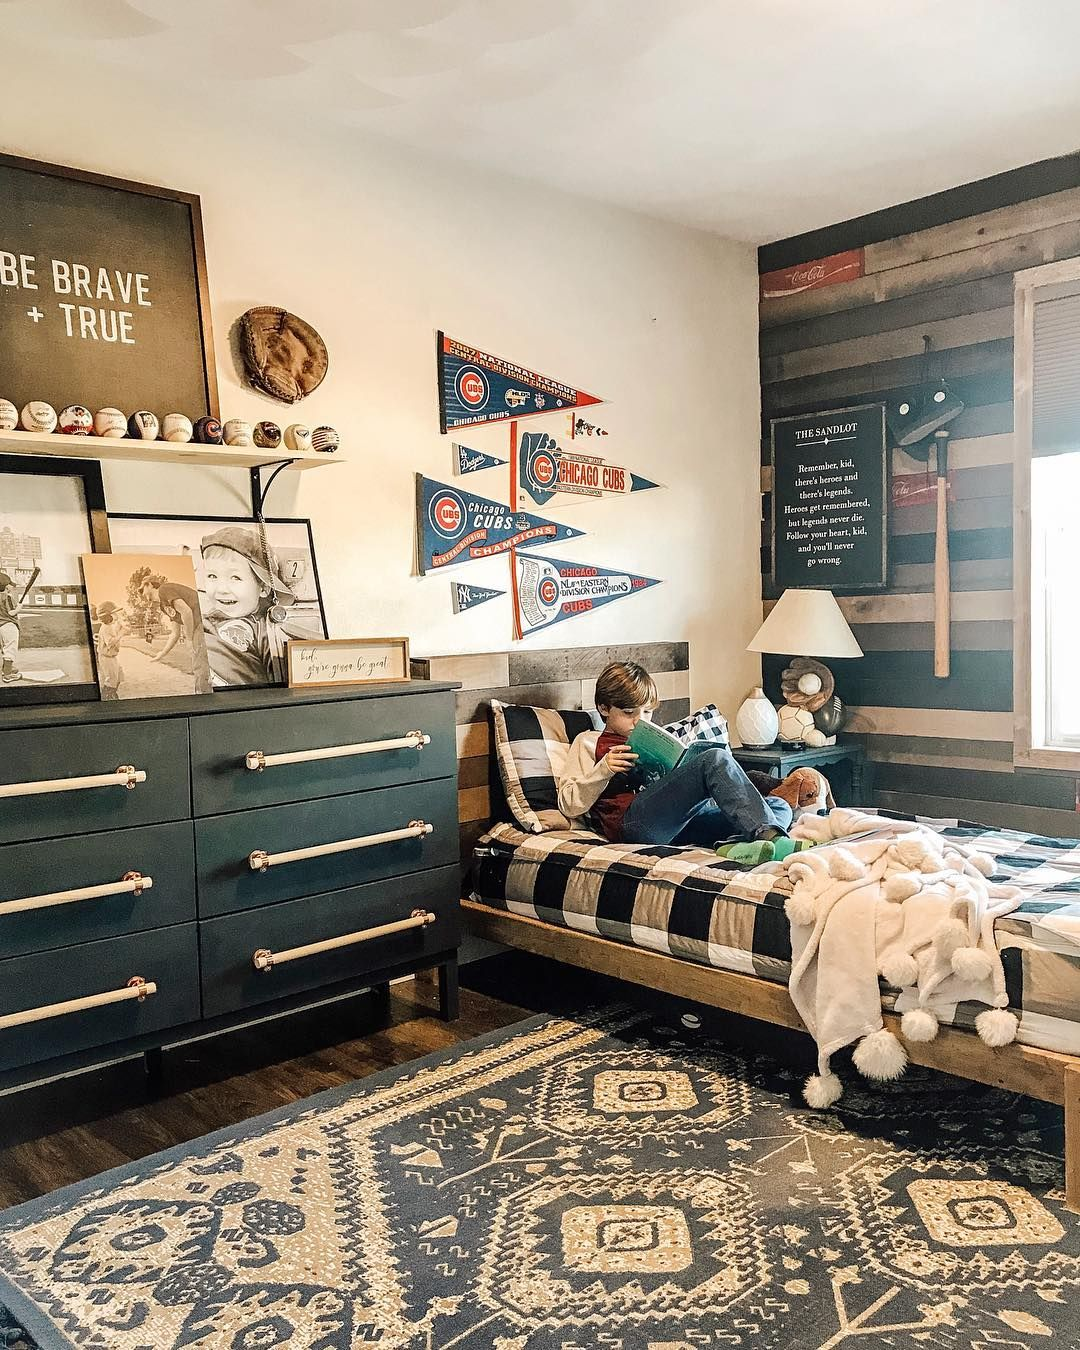 Fawn Teresi On Instagram We Finished His Baseball Themed Bedroom This Weekend And This Room F Baseball Themed Bedroom Baseball Room Decor Baseball Theme Room